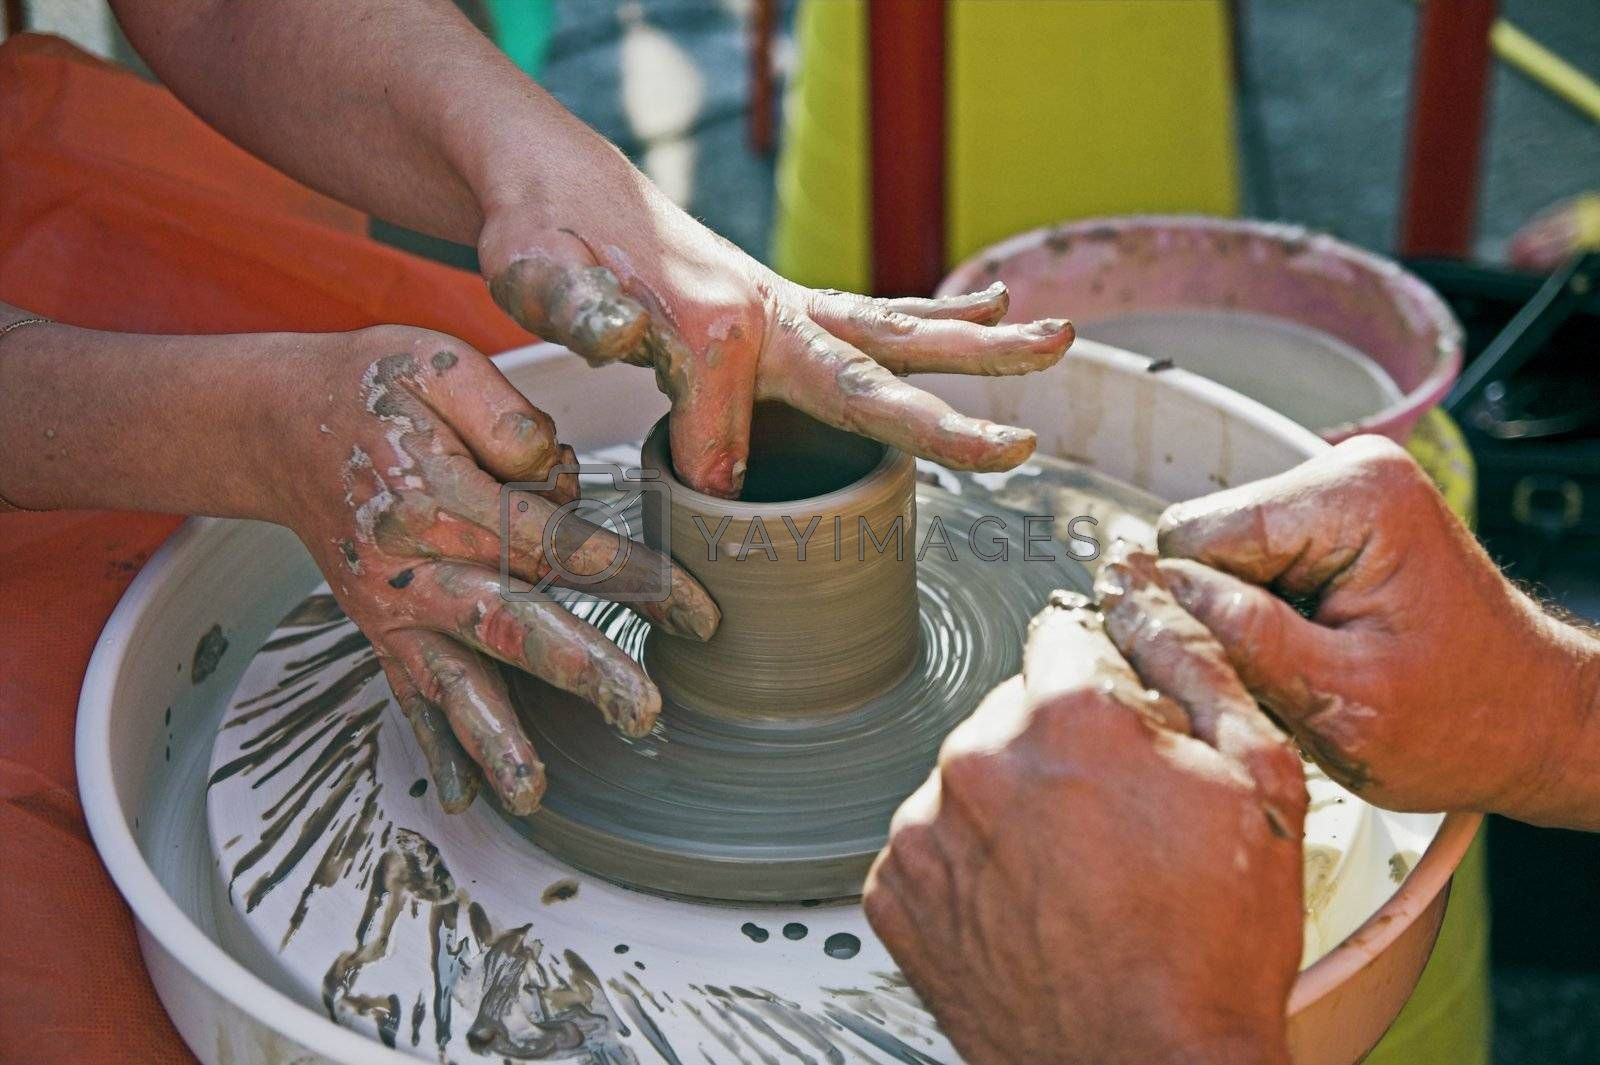 potter's hands guiding woman's hands to help her learn pottery